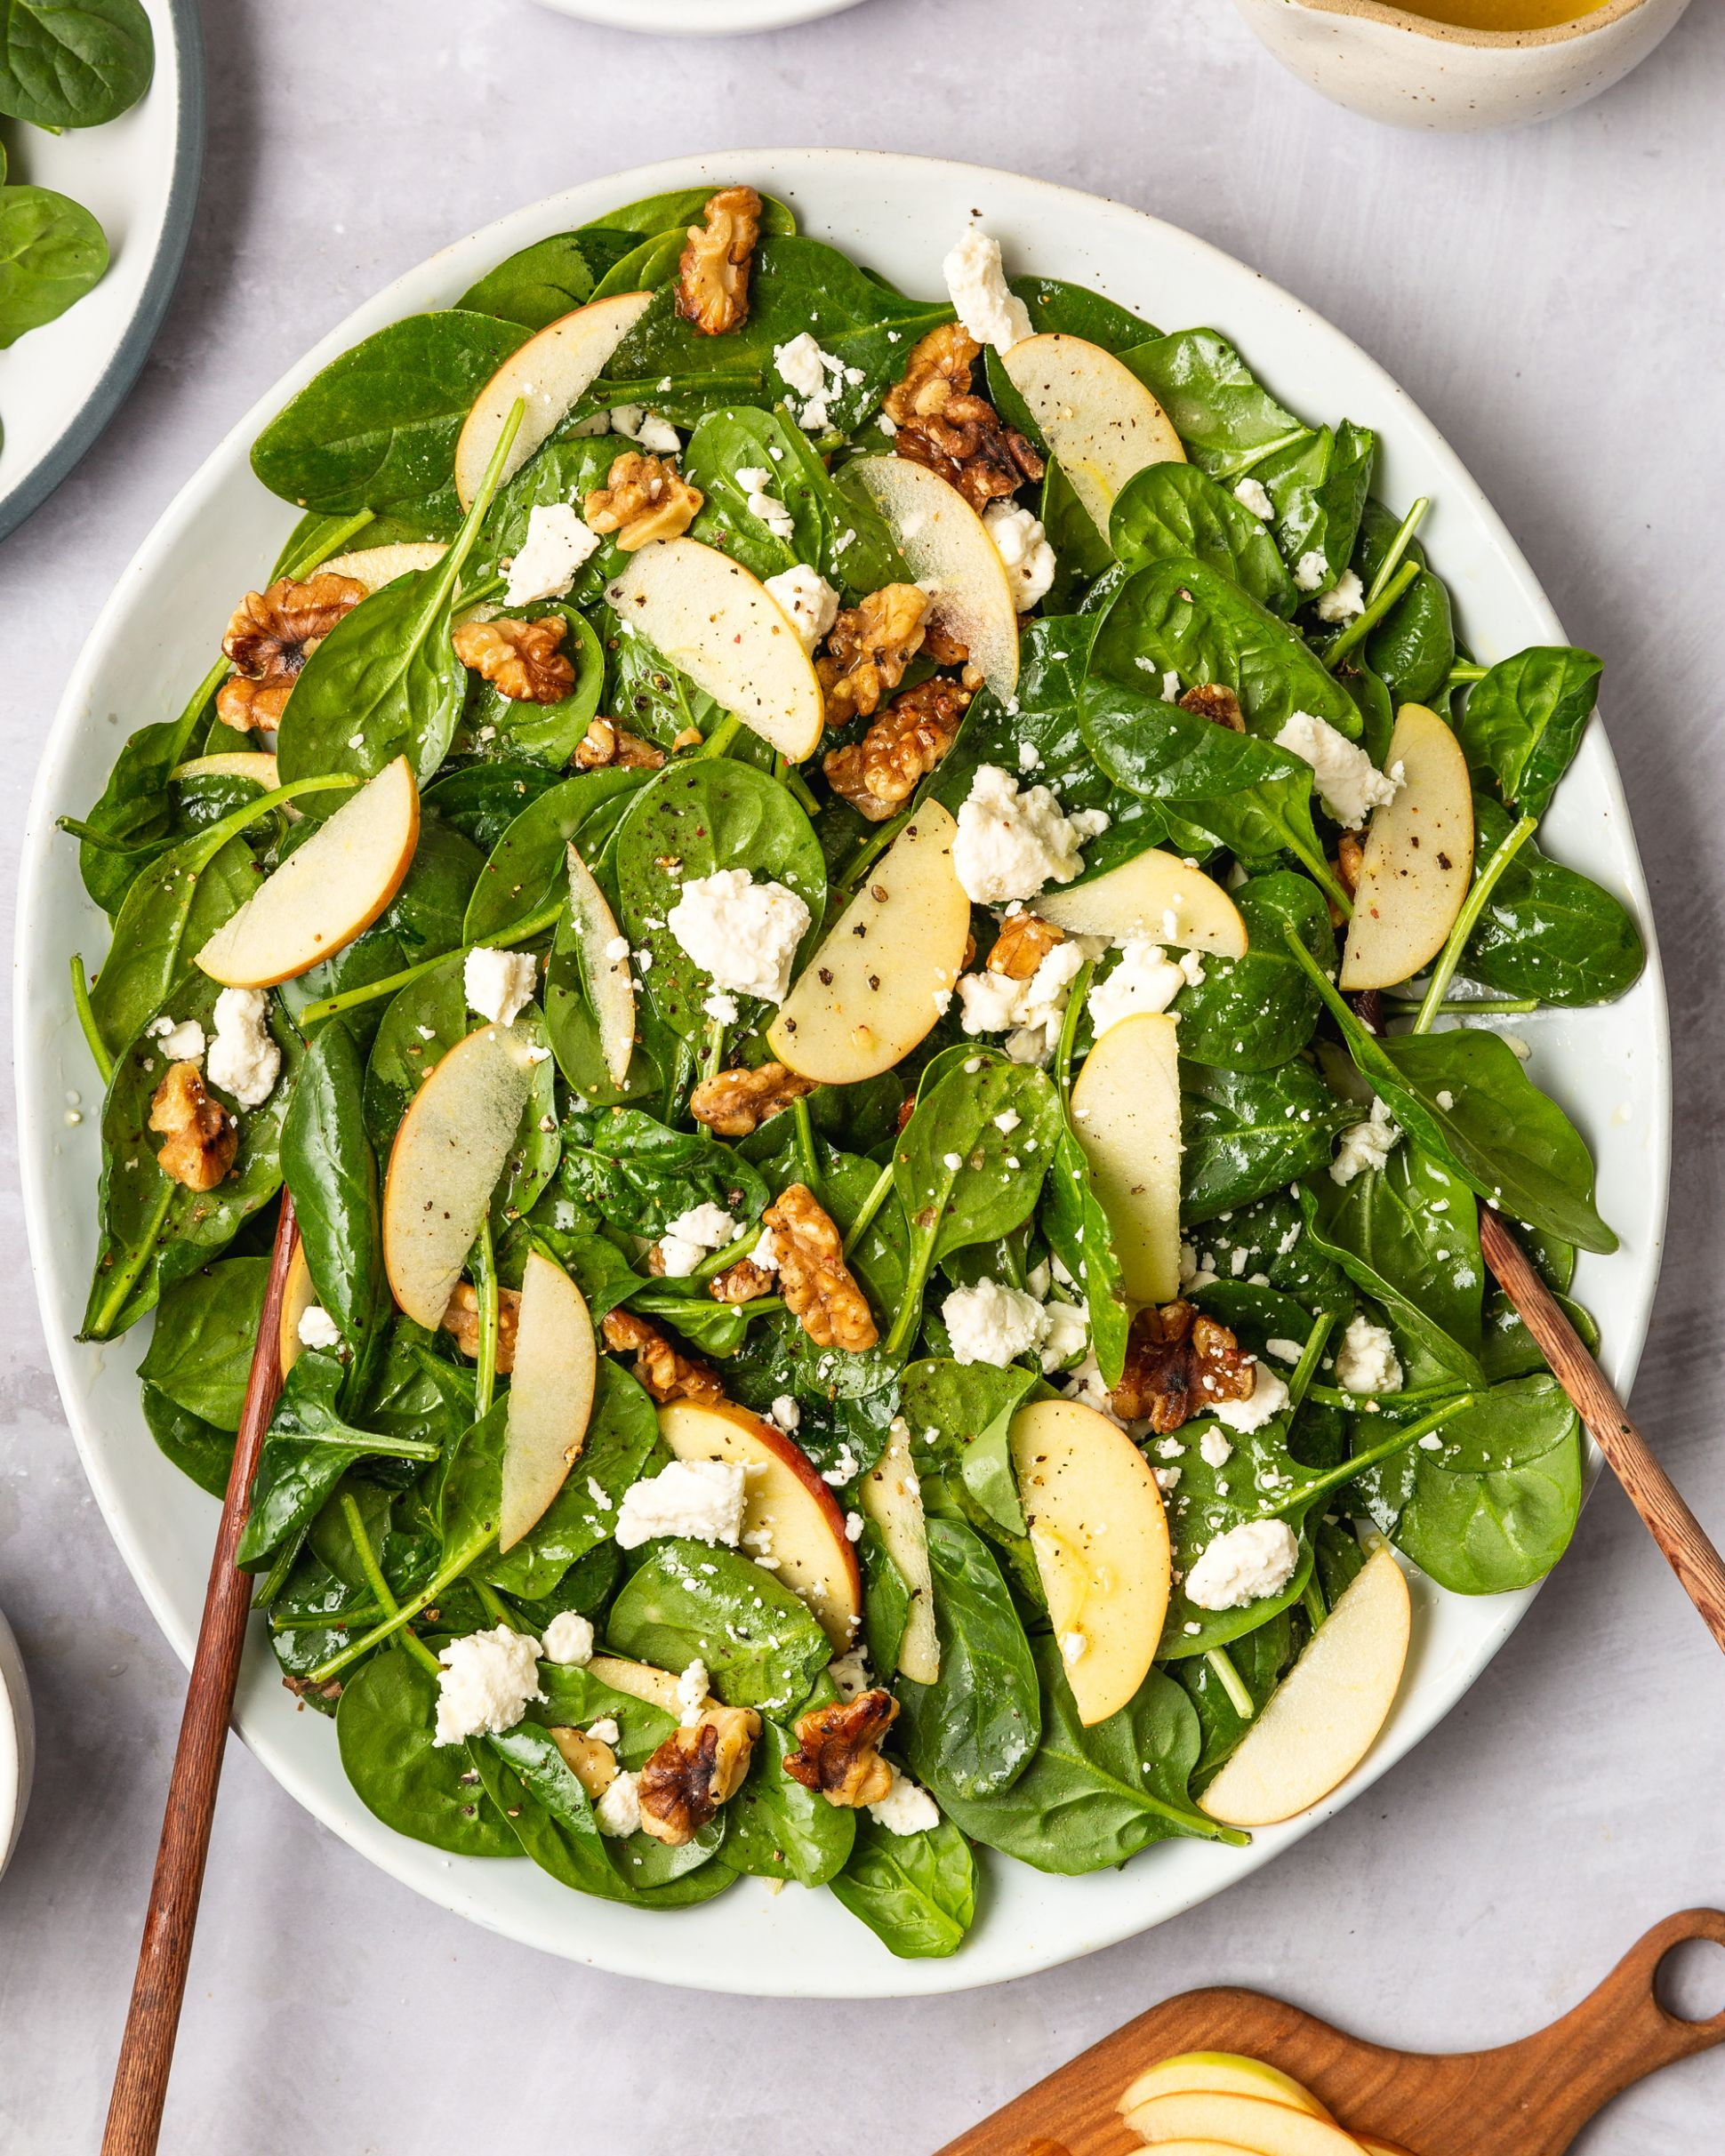 Easy Spinach Salad with Apples, Walnuts, and Feta